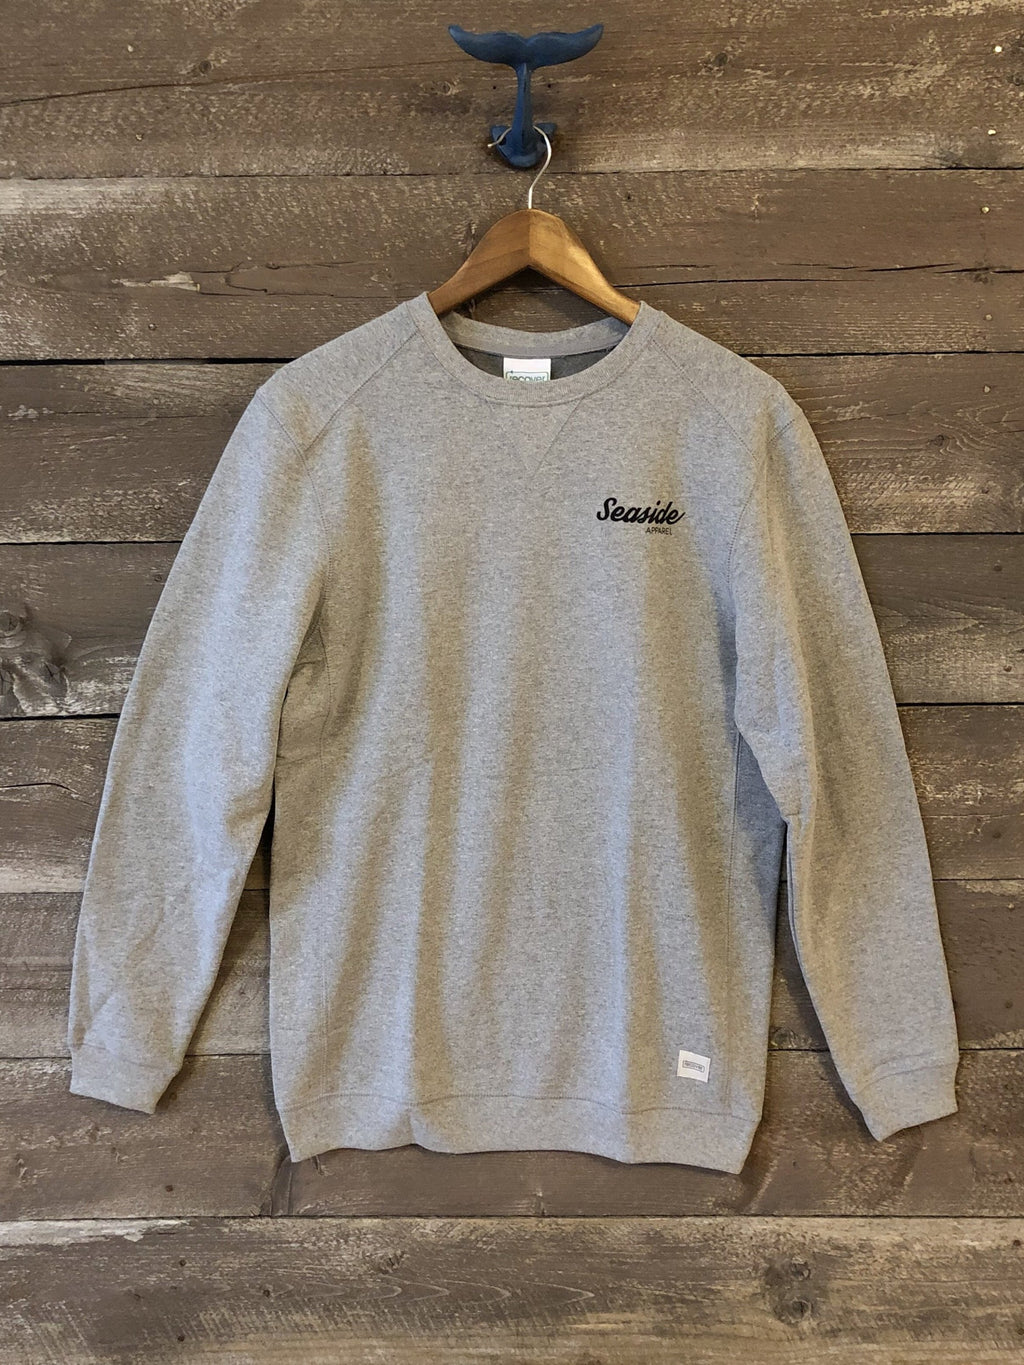 Seaside Crew Neck Sweater